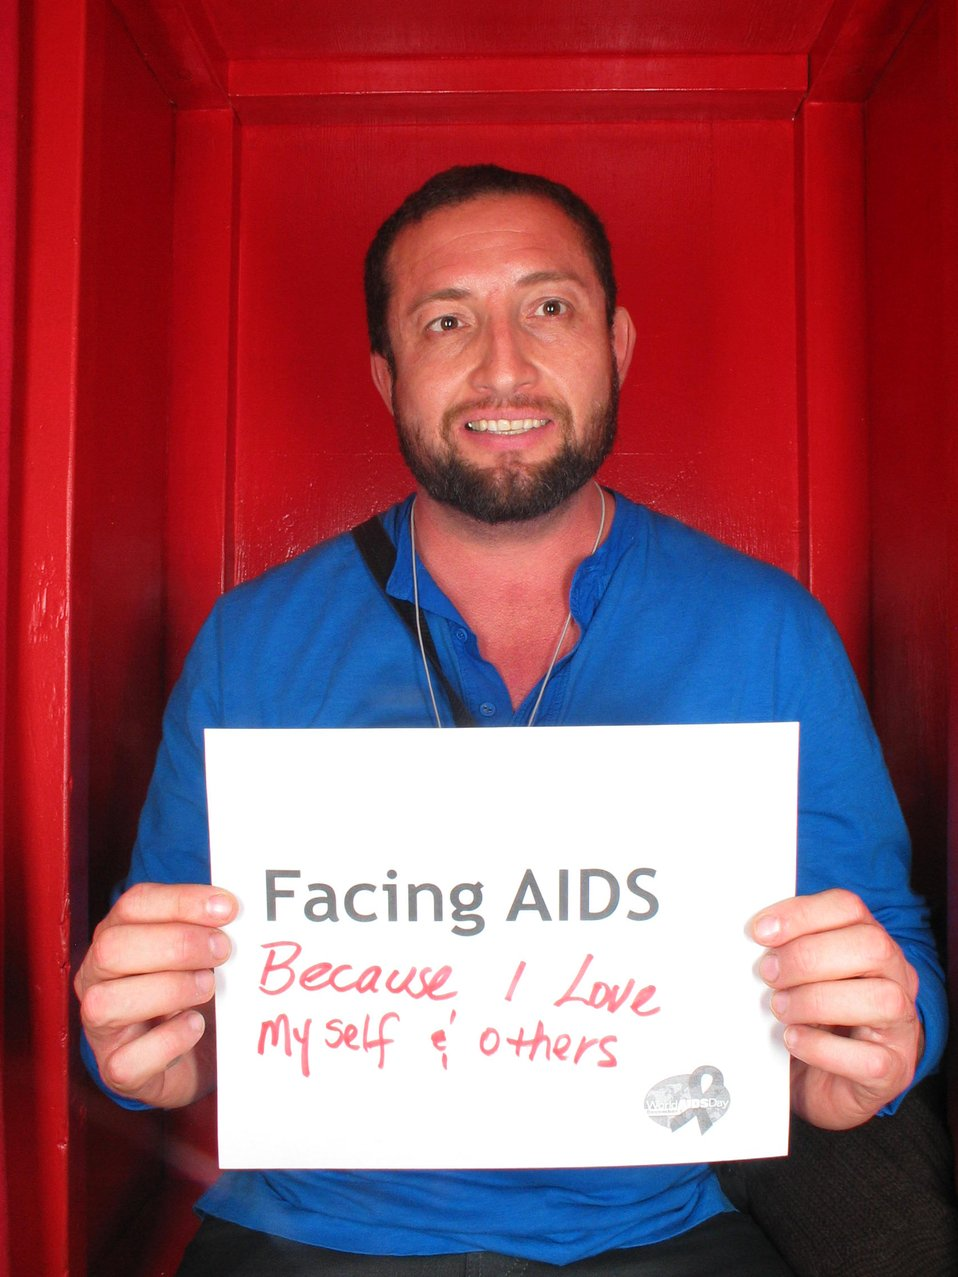 Facing AIDS because I love myself and others